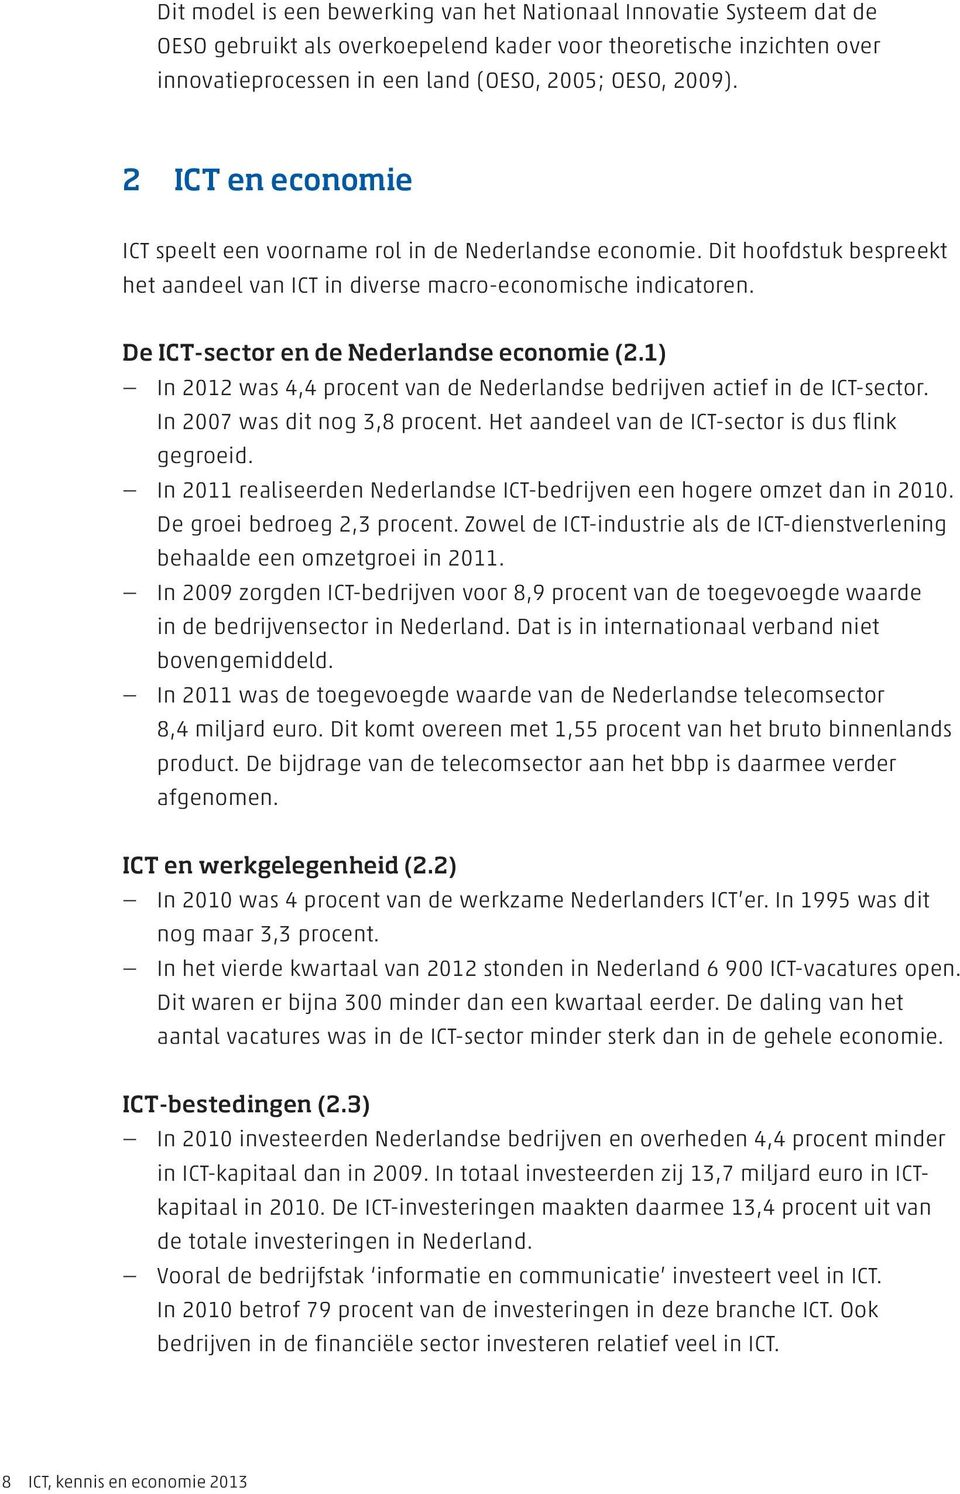 De ICT-sector en de Nederlandse economie (2. In 2012 was 4,4 procent van de Nederlandse bedrijven actief in de ICT-sector. In 2007 was dit nog 3,8 procent.